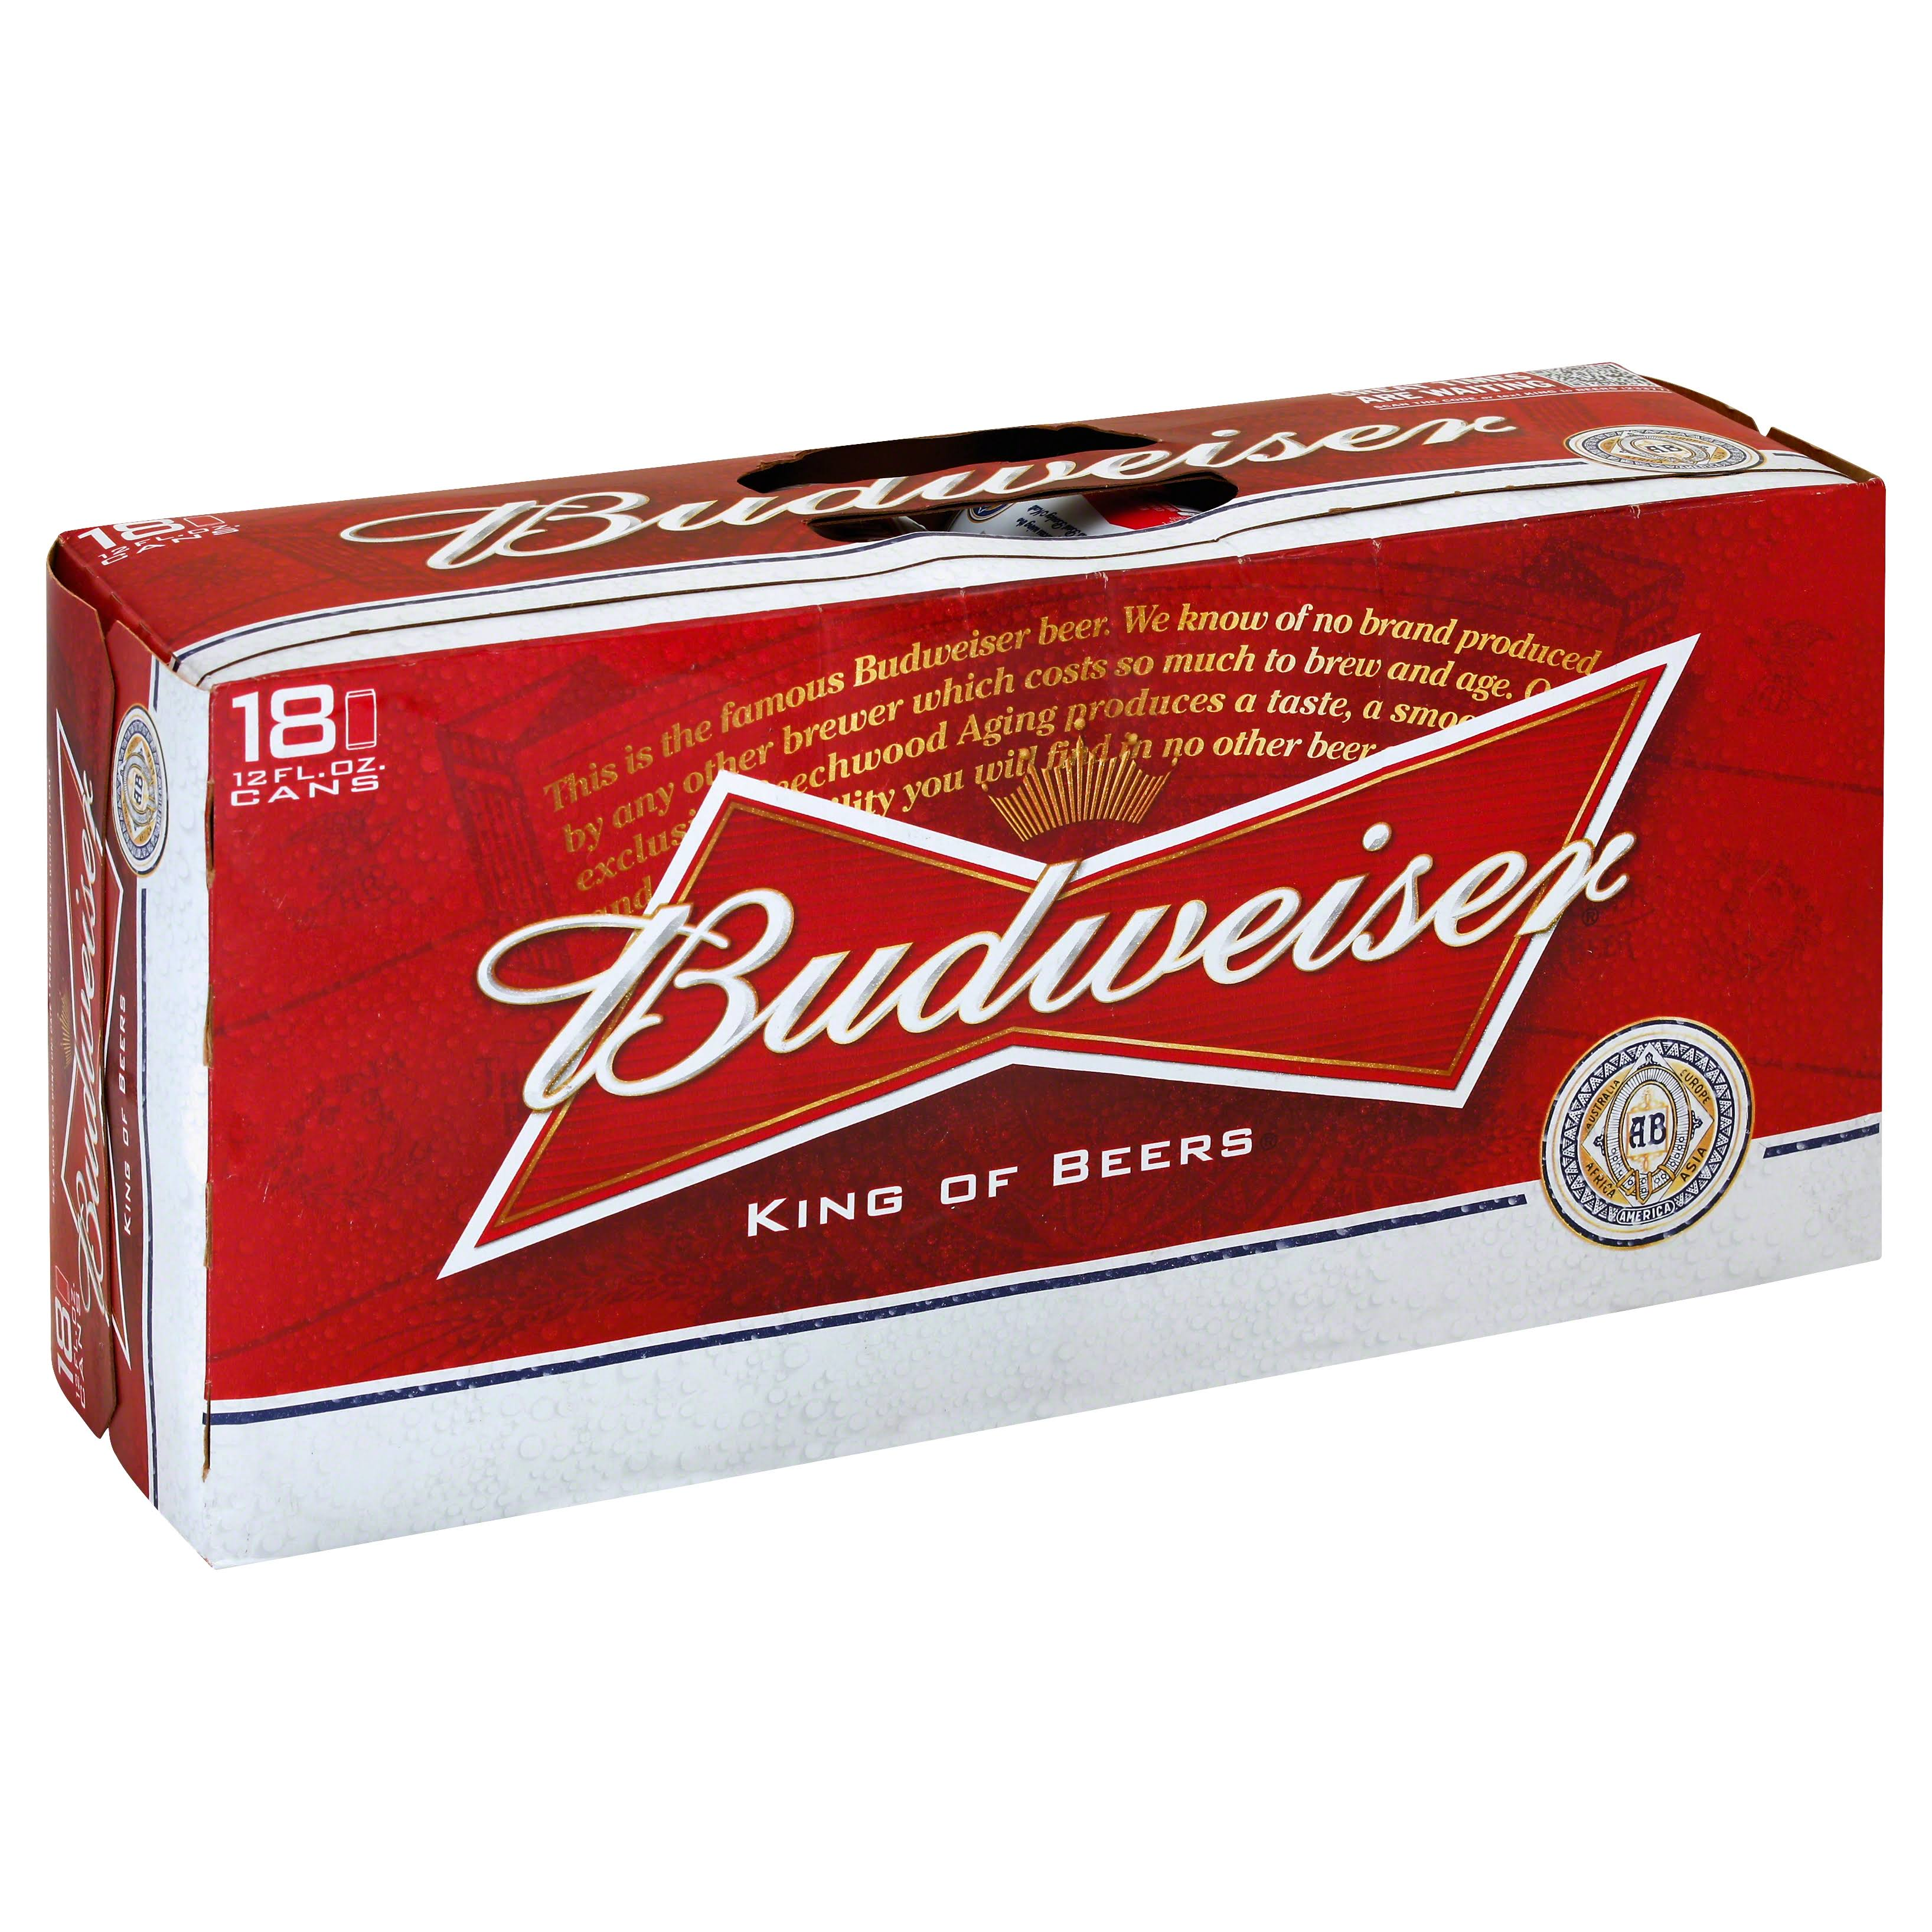 Budweiser American Lager - 18 Cans